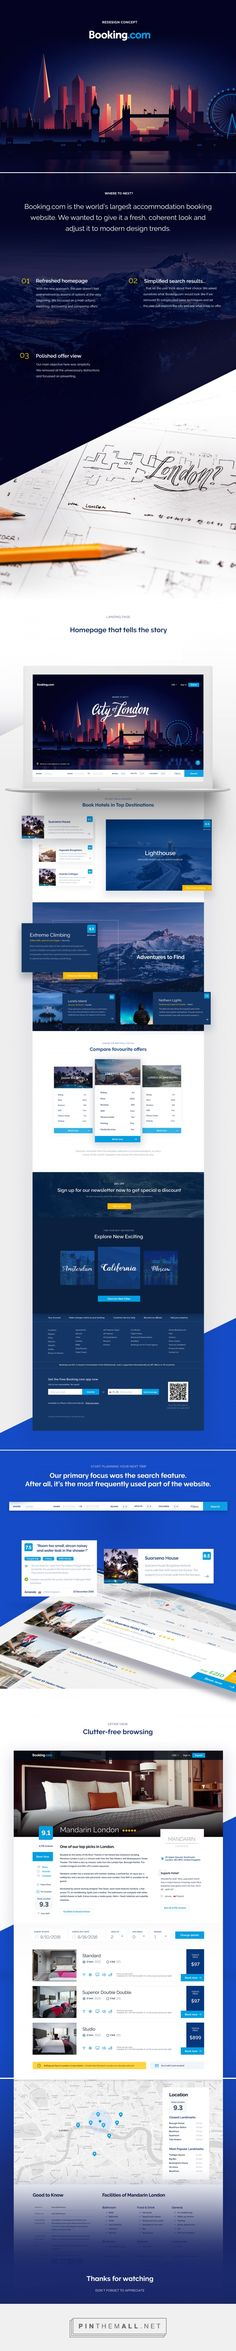 Booking.com redesign on Behance - created via https://pinthemall.net